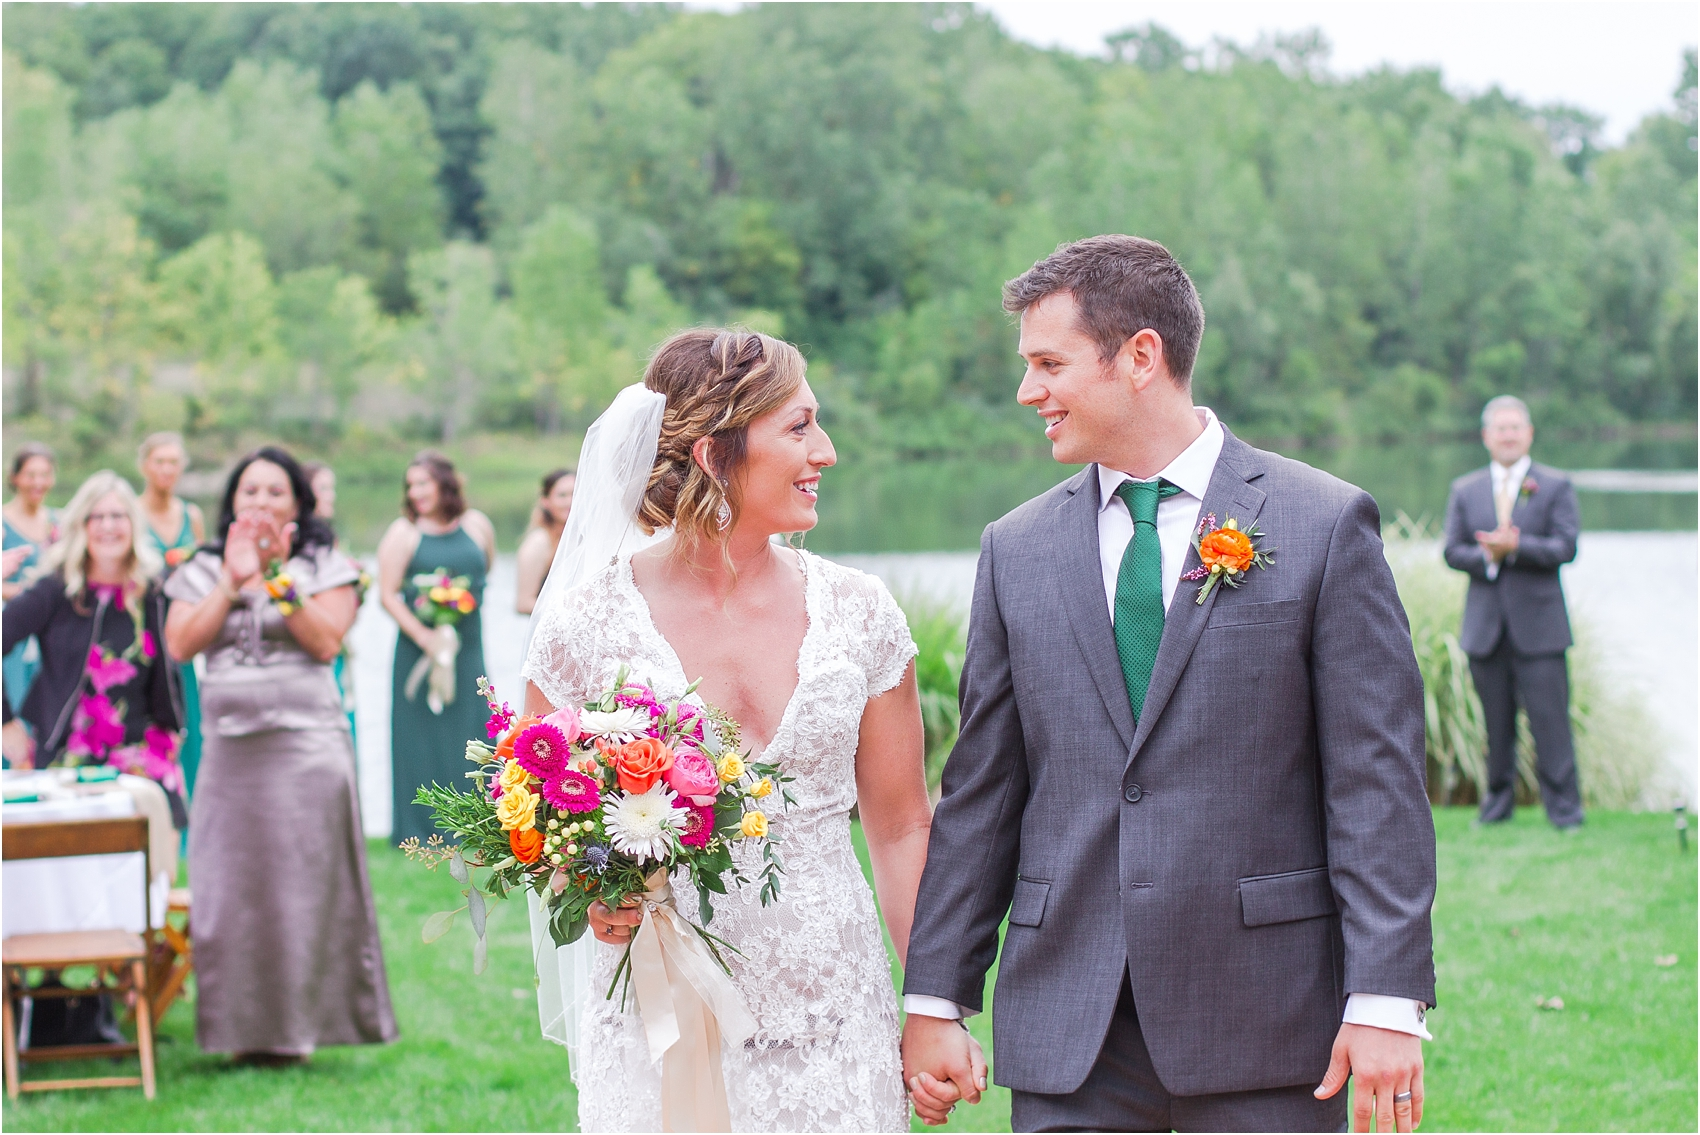 romantic-intimate-backyard-wedding-photos-at-private-estate-in-ann-arbor-mi-by-courtney-carolyn-photography_0112.jpg